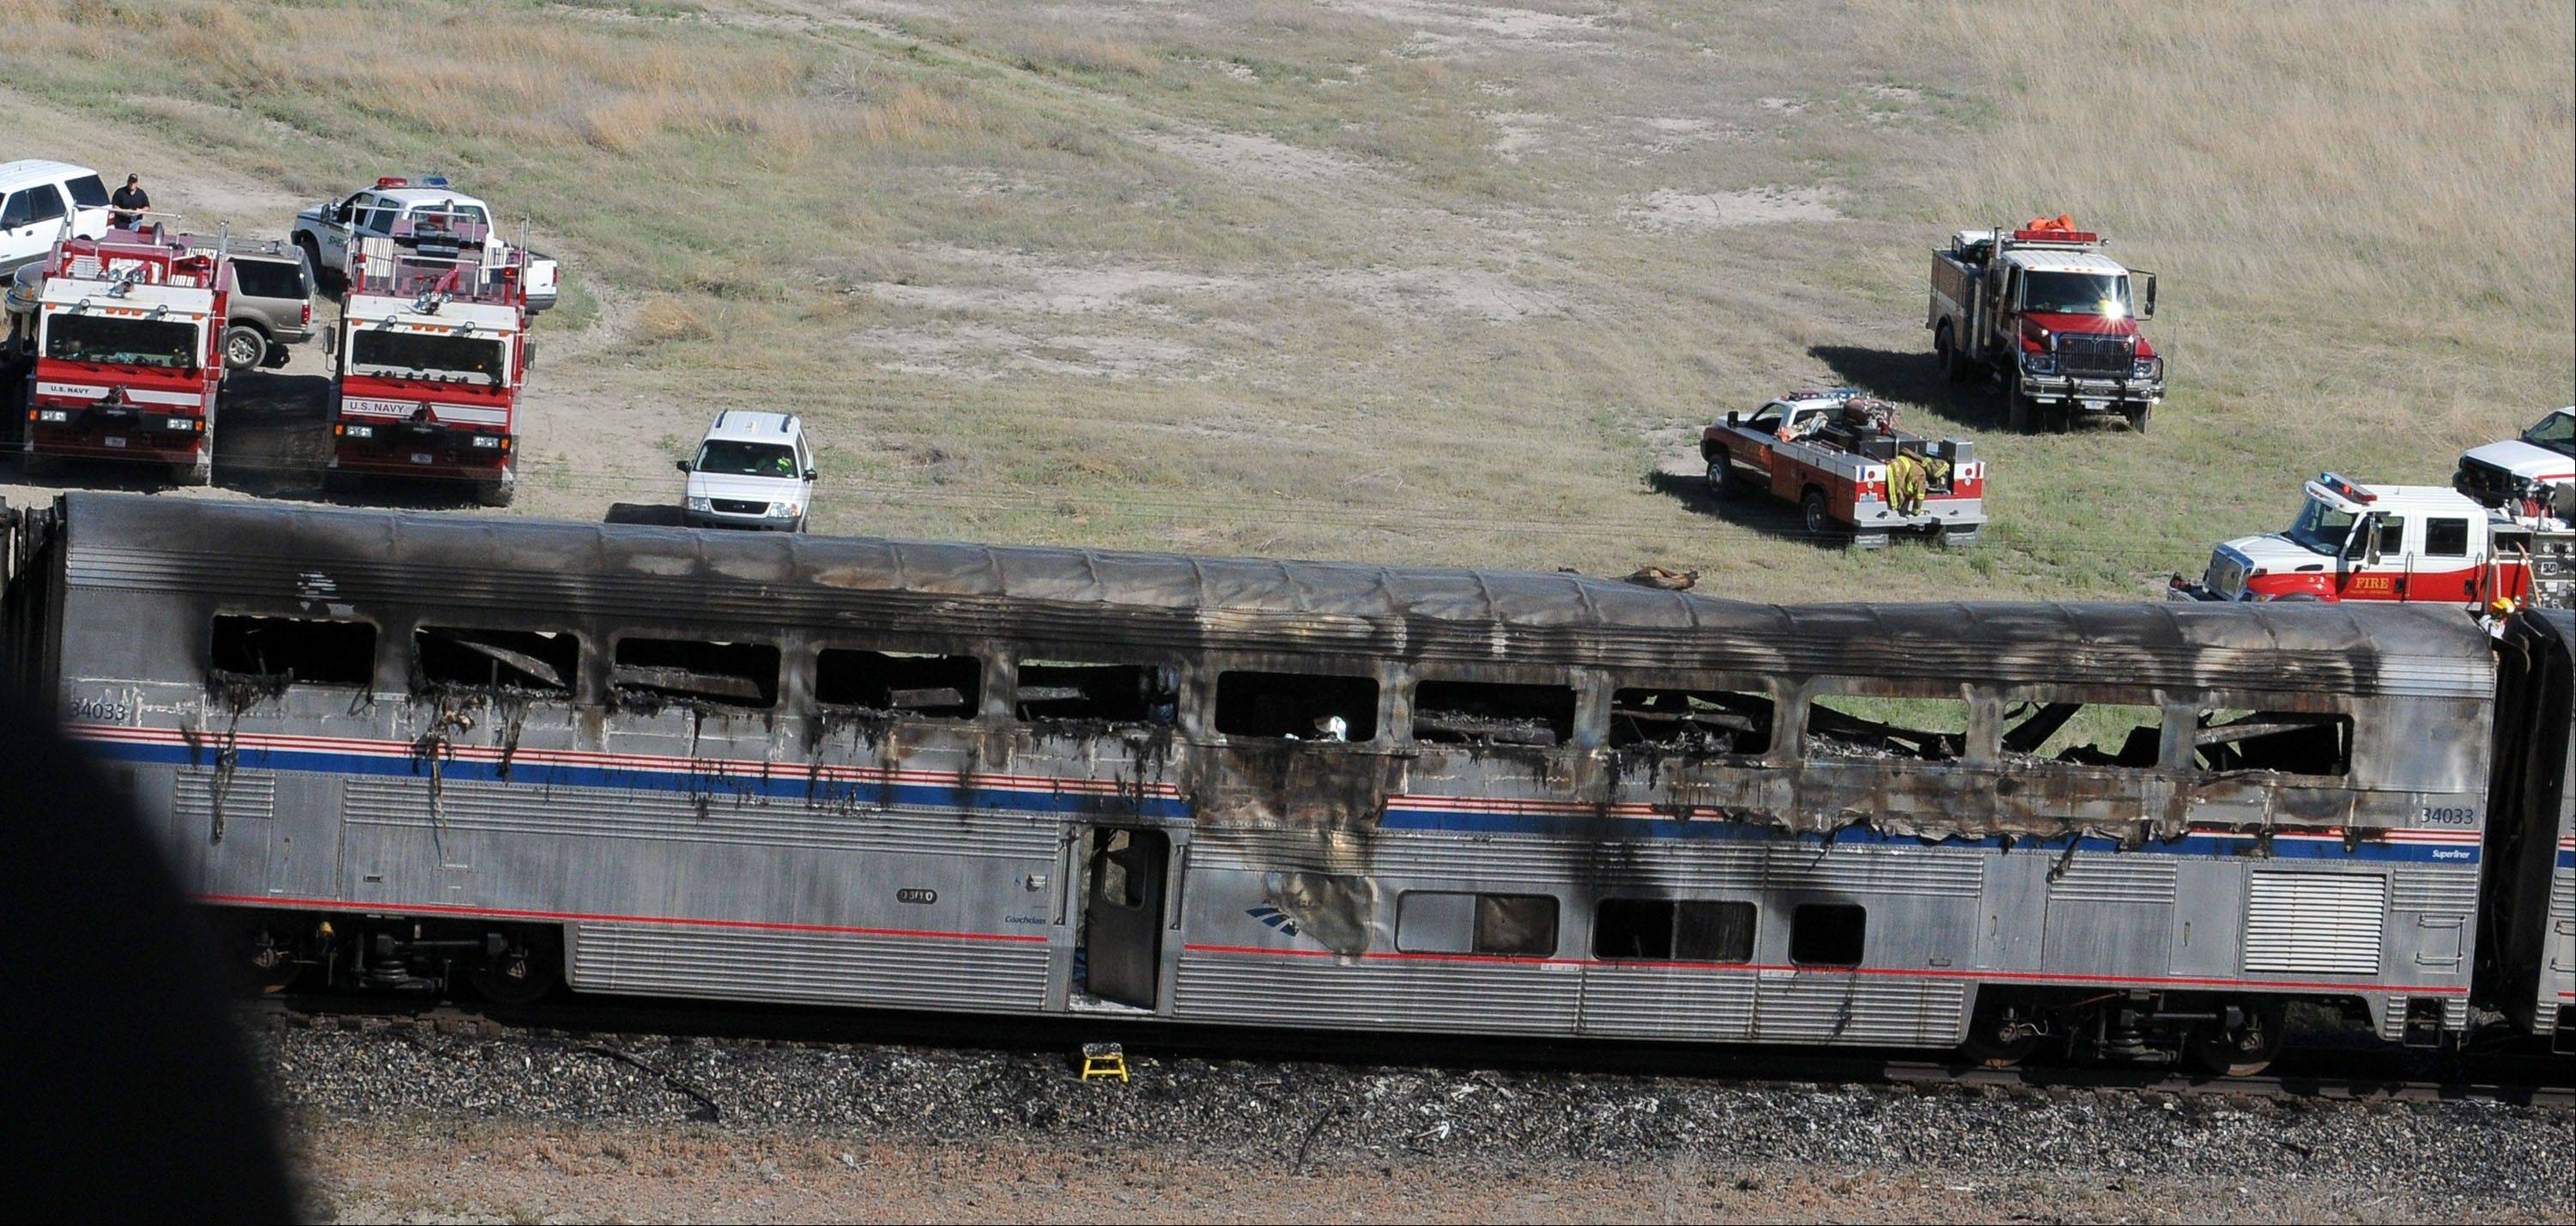 An Amtrak car is seen at the site of a collision between an Amtrak westbound train and a truck about 70 miles east of Reno, Nev.